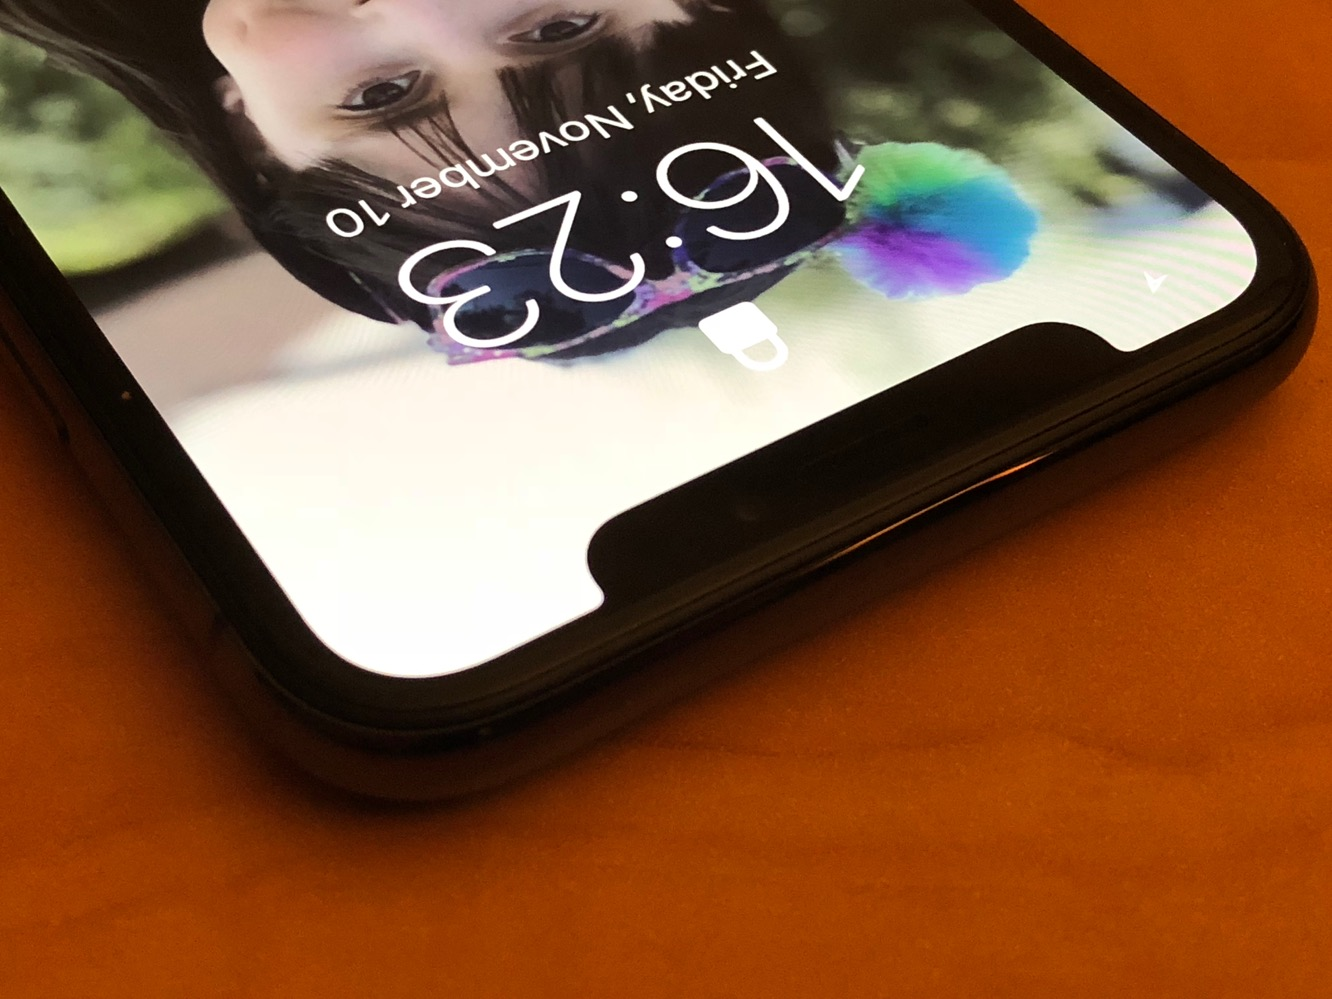 LG encounters issues in the supply of screens for new Apple iPhones